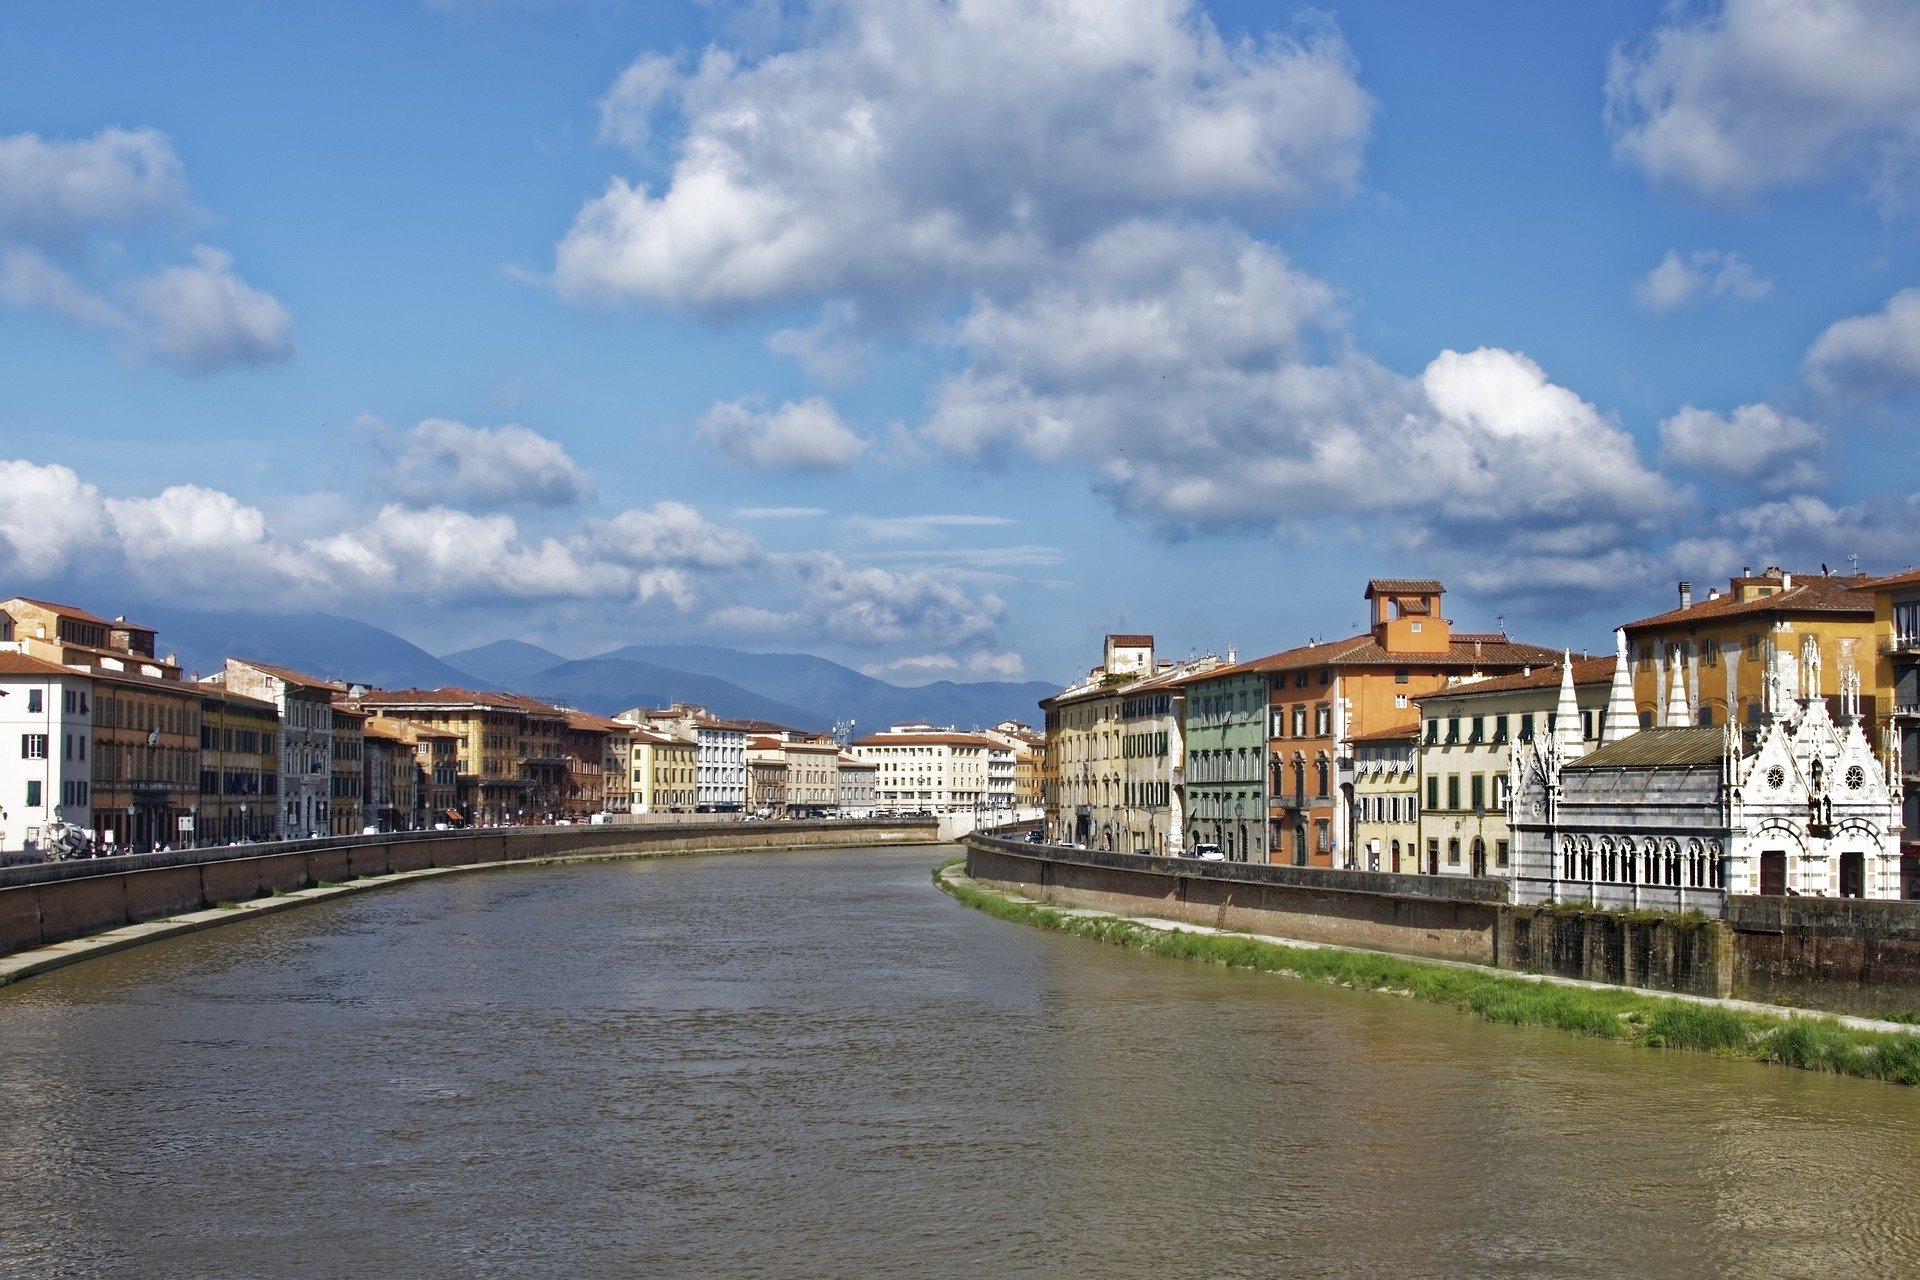 The riverside of Pisa.